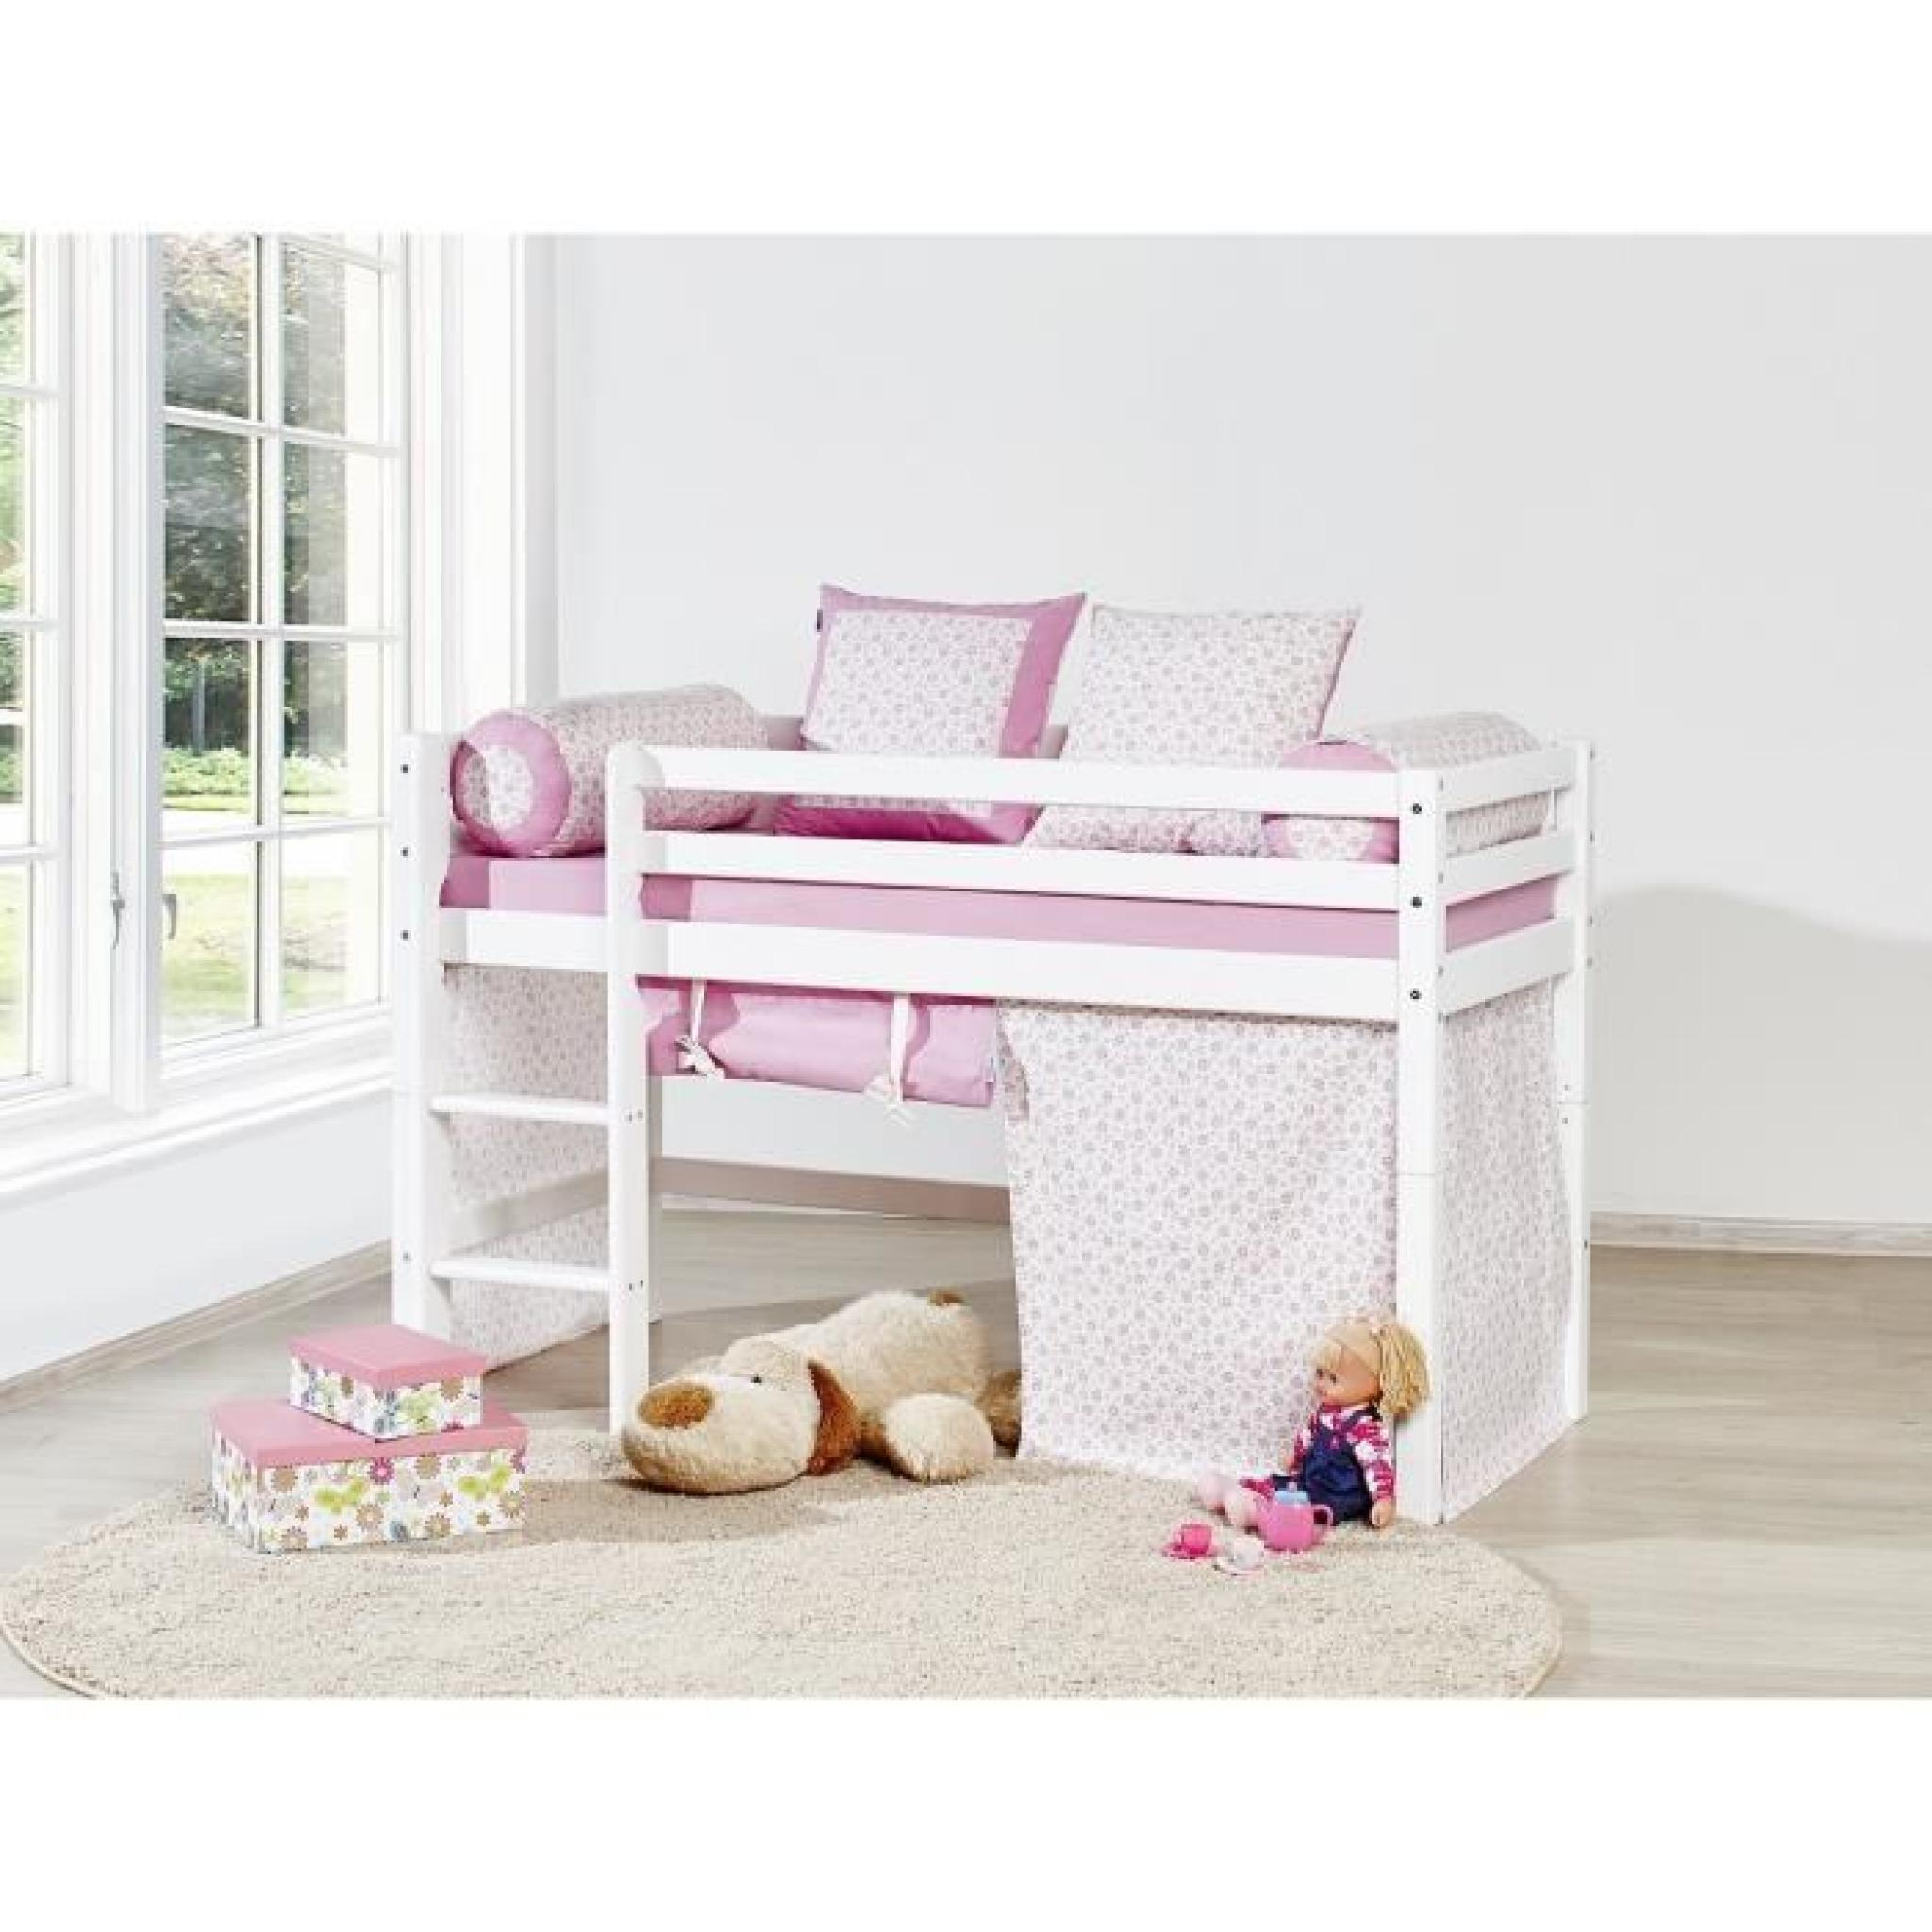 Habillage Lit Superposé Loop Princesse Lit Superposé Enfant 70x160cm Blanc